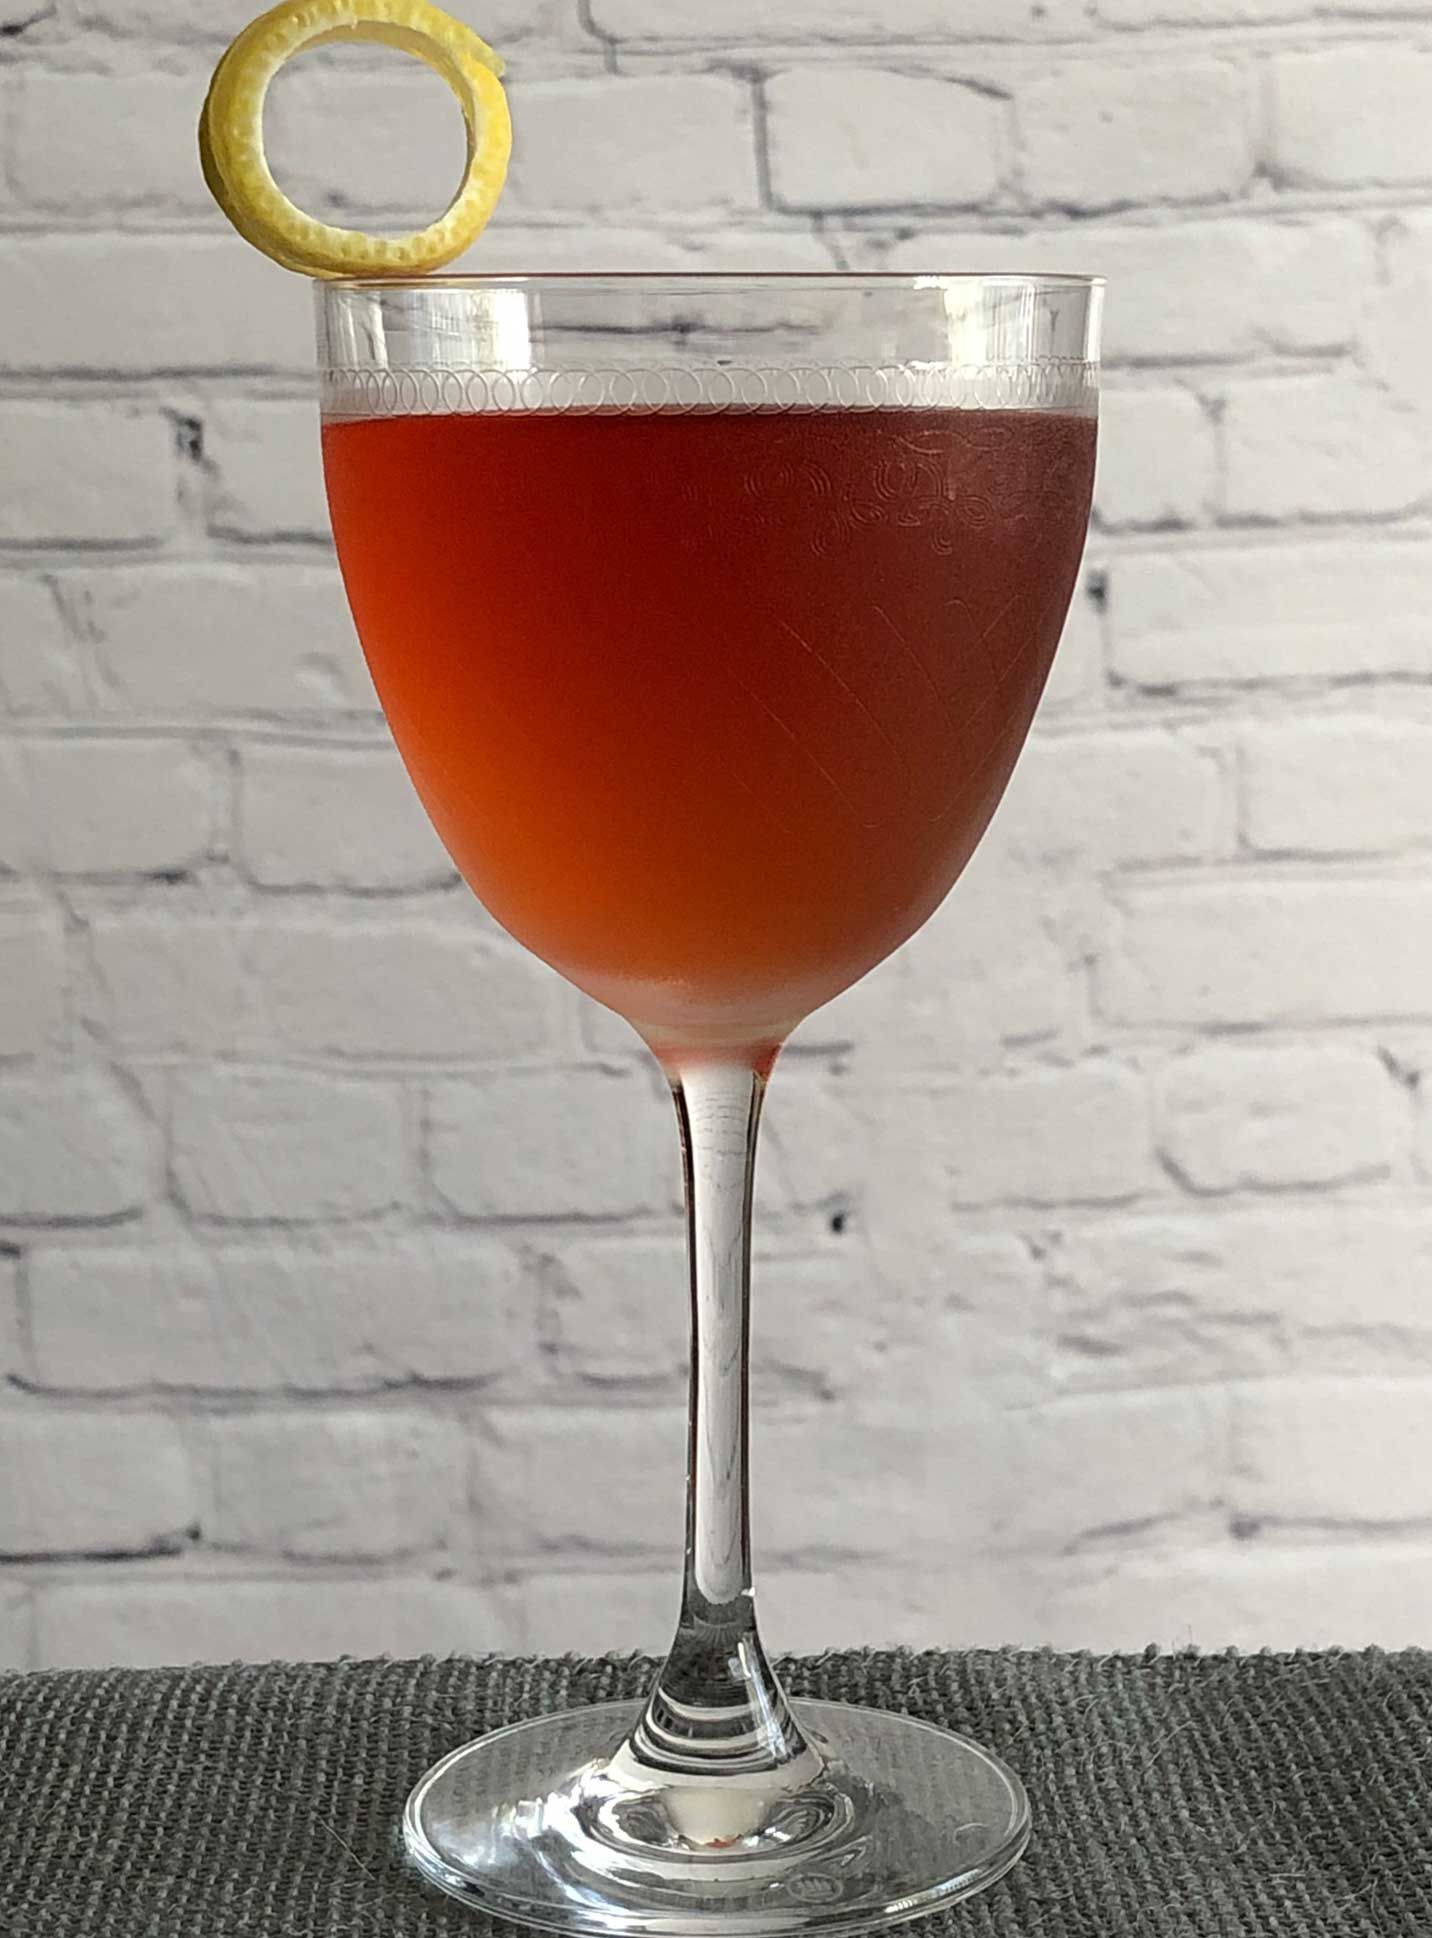 An example of the Affaire de Familie, the mixed drink (cocktail) featuring Byrrh Grand Quinquina, Hayman's London Dry Gin, Cocchi Americano Bianco, maraschino liqueur, and orange bitters; photo by Lee Edwards